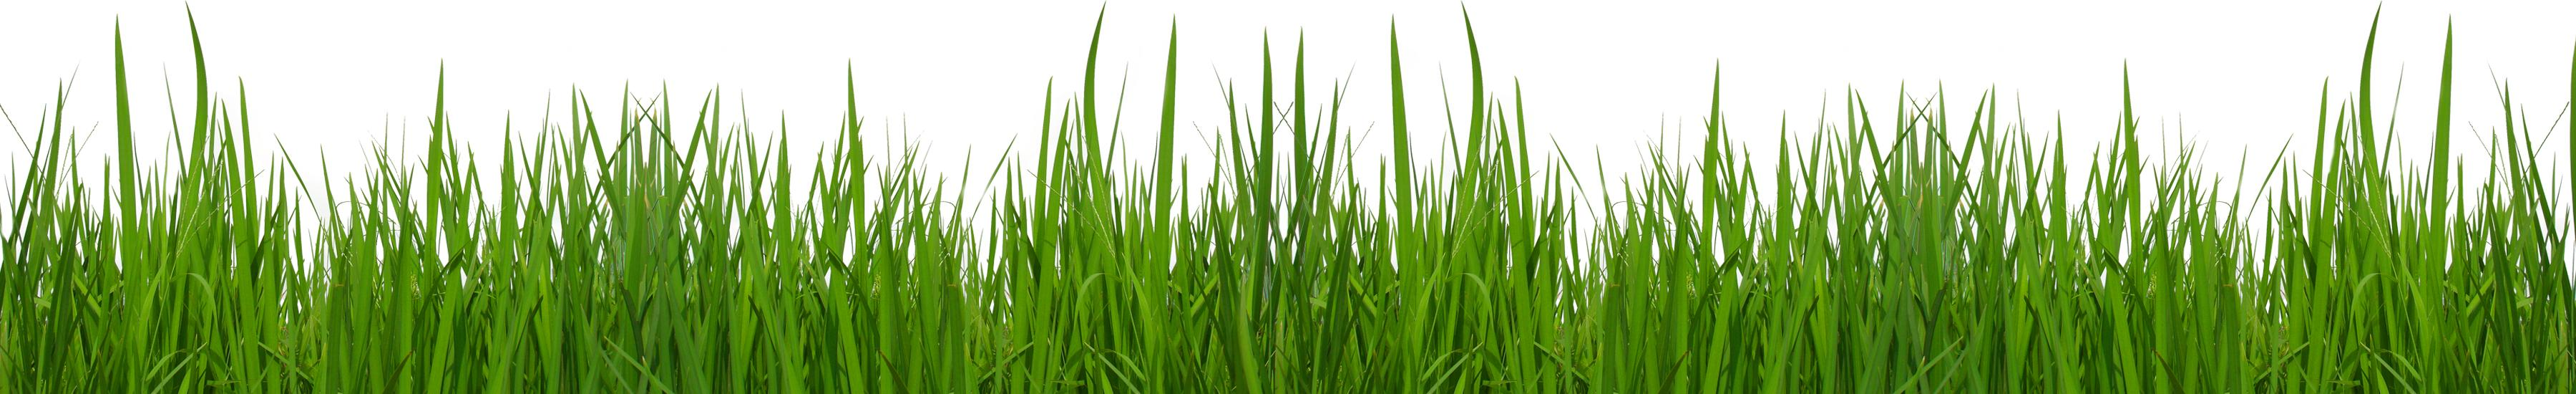 Free Blades Of Grass Png, Download Free Clip Art, Free Clip.